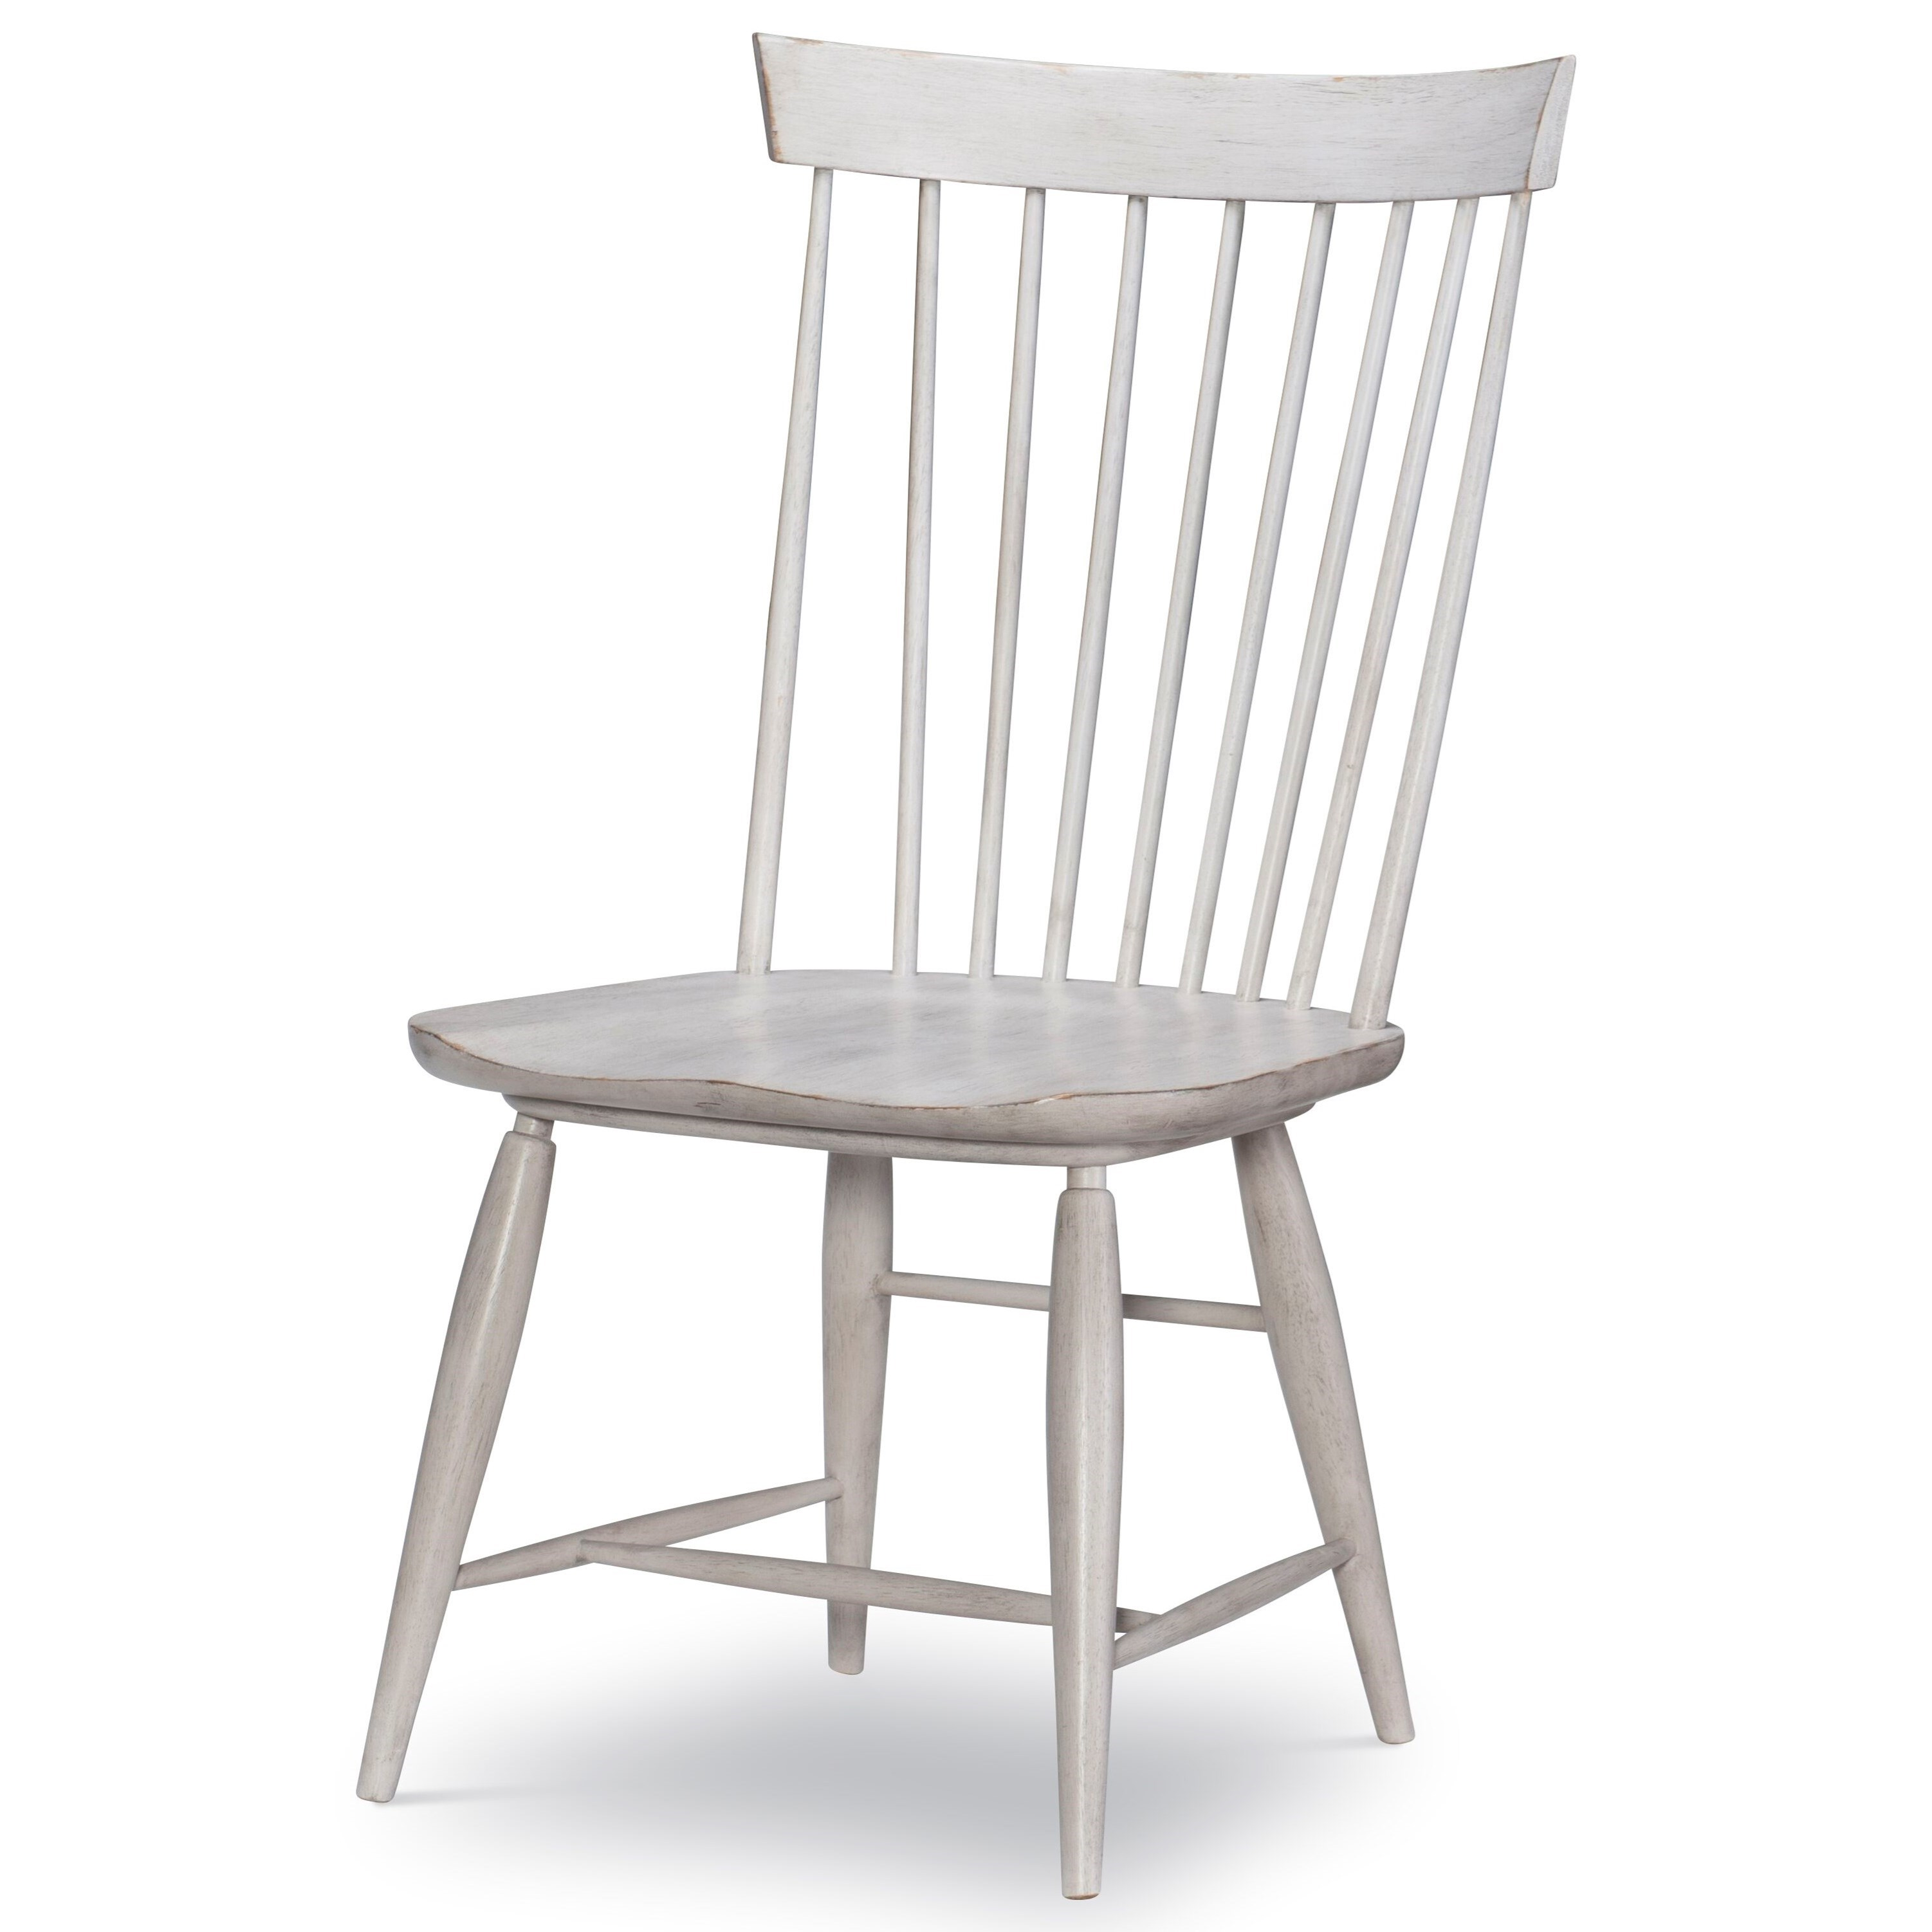 Belhaven Windsor Side Chair by Legacy Classic at Stoney Creek Furniture